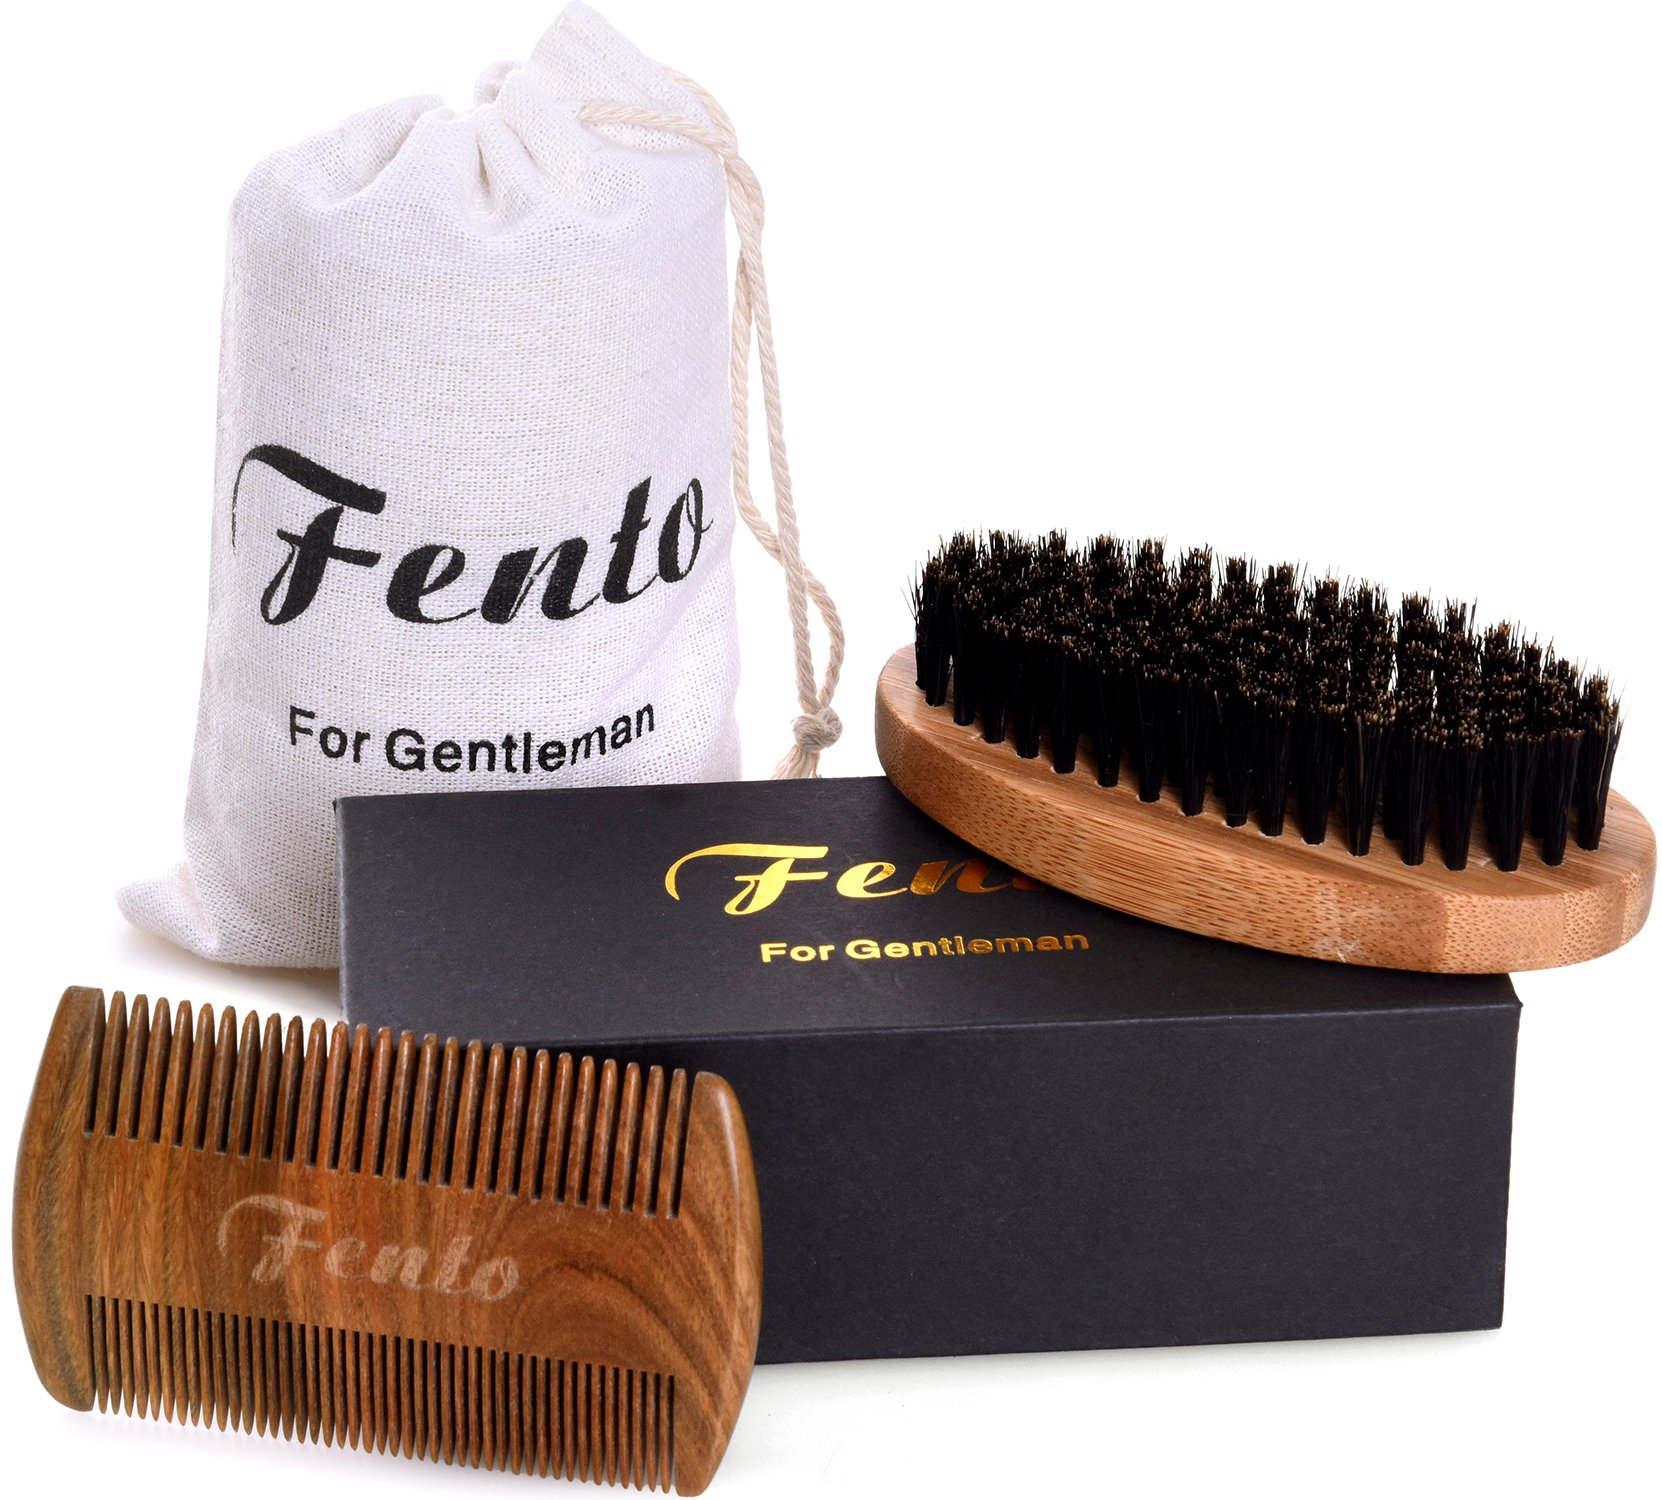 Fento Boar Bristle Beard Brush and Beard Comb Set - For Men Beard and Mustache, Thick & Thin Teeth Sandal Wood Comb, With Gift Box and Carrying Bag